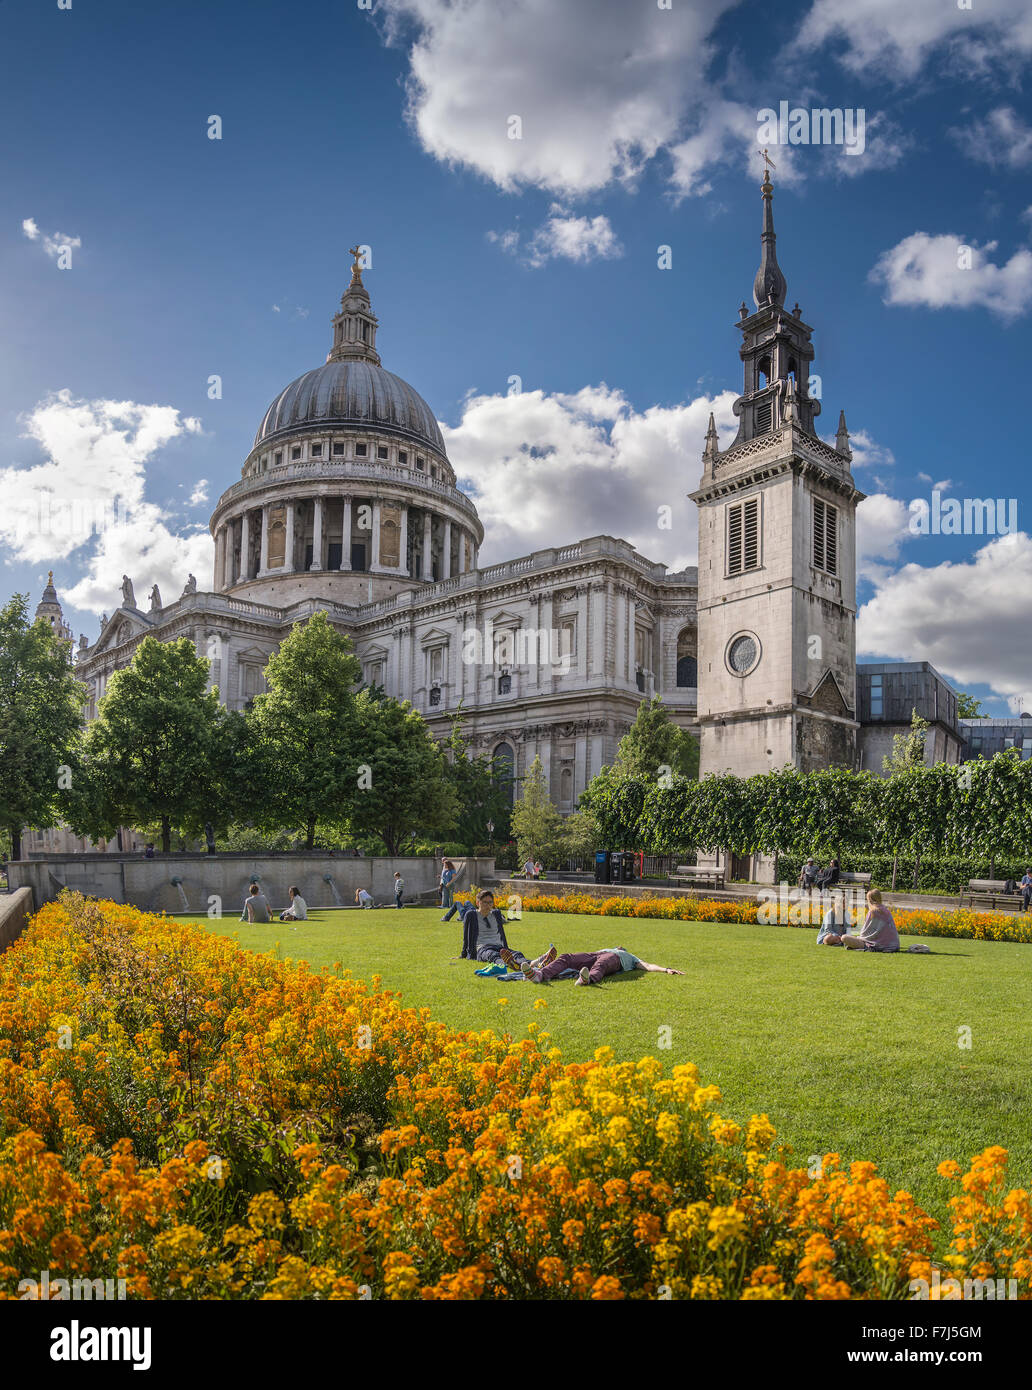 t Paul´s and Garden, London, UK - Stock Image